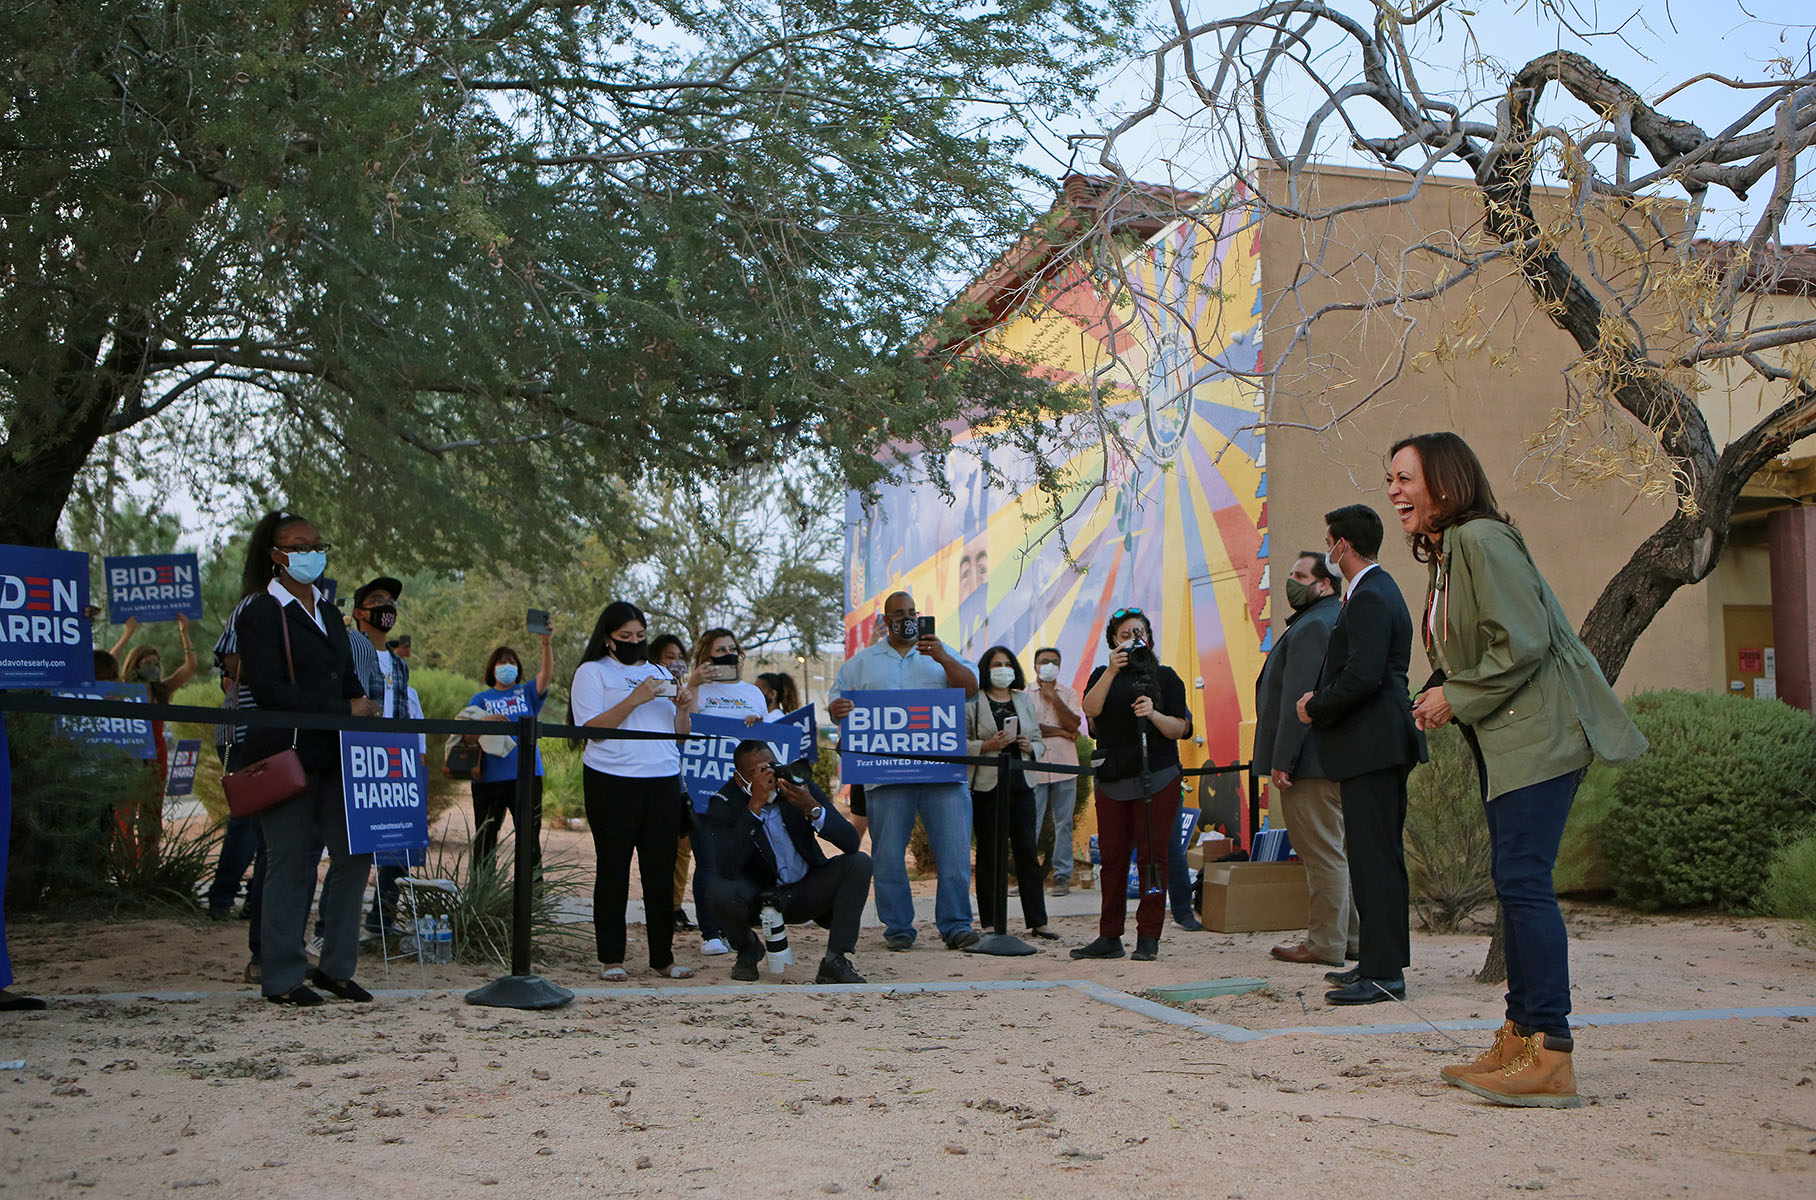 Democratic vice presidential candidate U.S. Senator Kamala Harris (D-Calif.) visits briefly with supporters after taking part in a community discussion at Rafael Rivera Community Center Tuesday, September 15, 2020, in Las Vegas. Since the event was closed to the public due to COVID-19 precautions, supporters gathered outside the building where Harris spoke hoping to get a glimpse of the candidate.